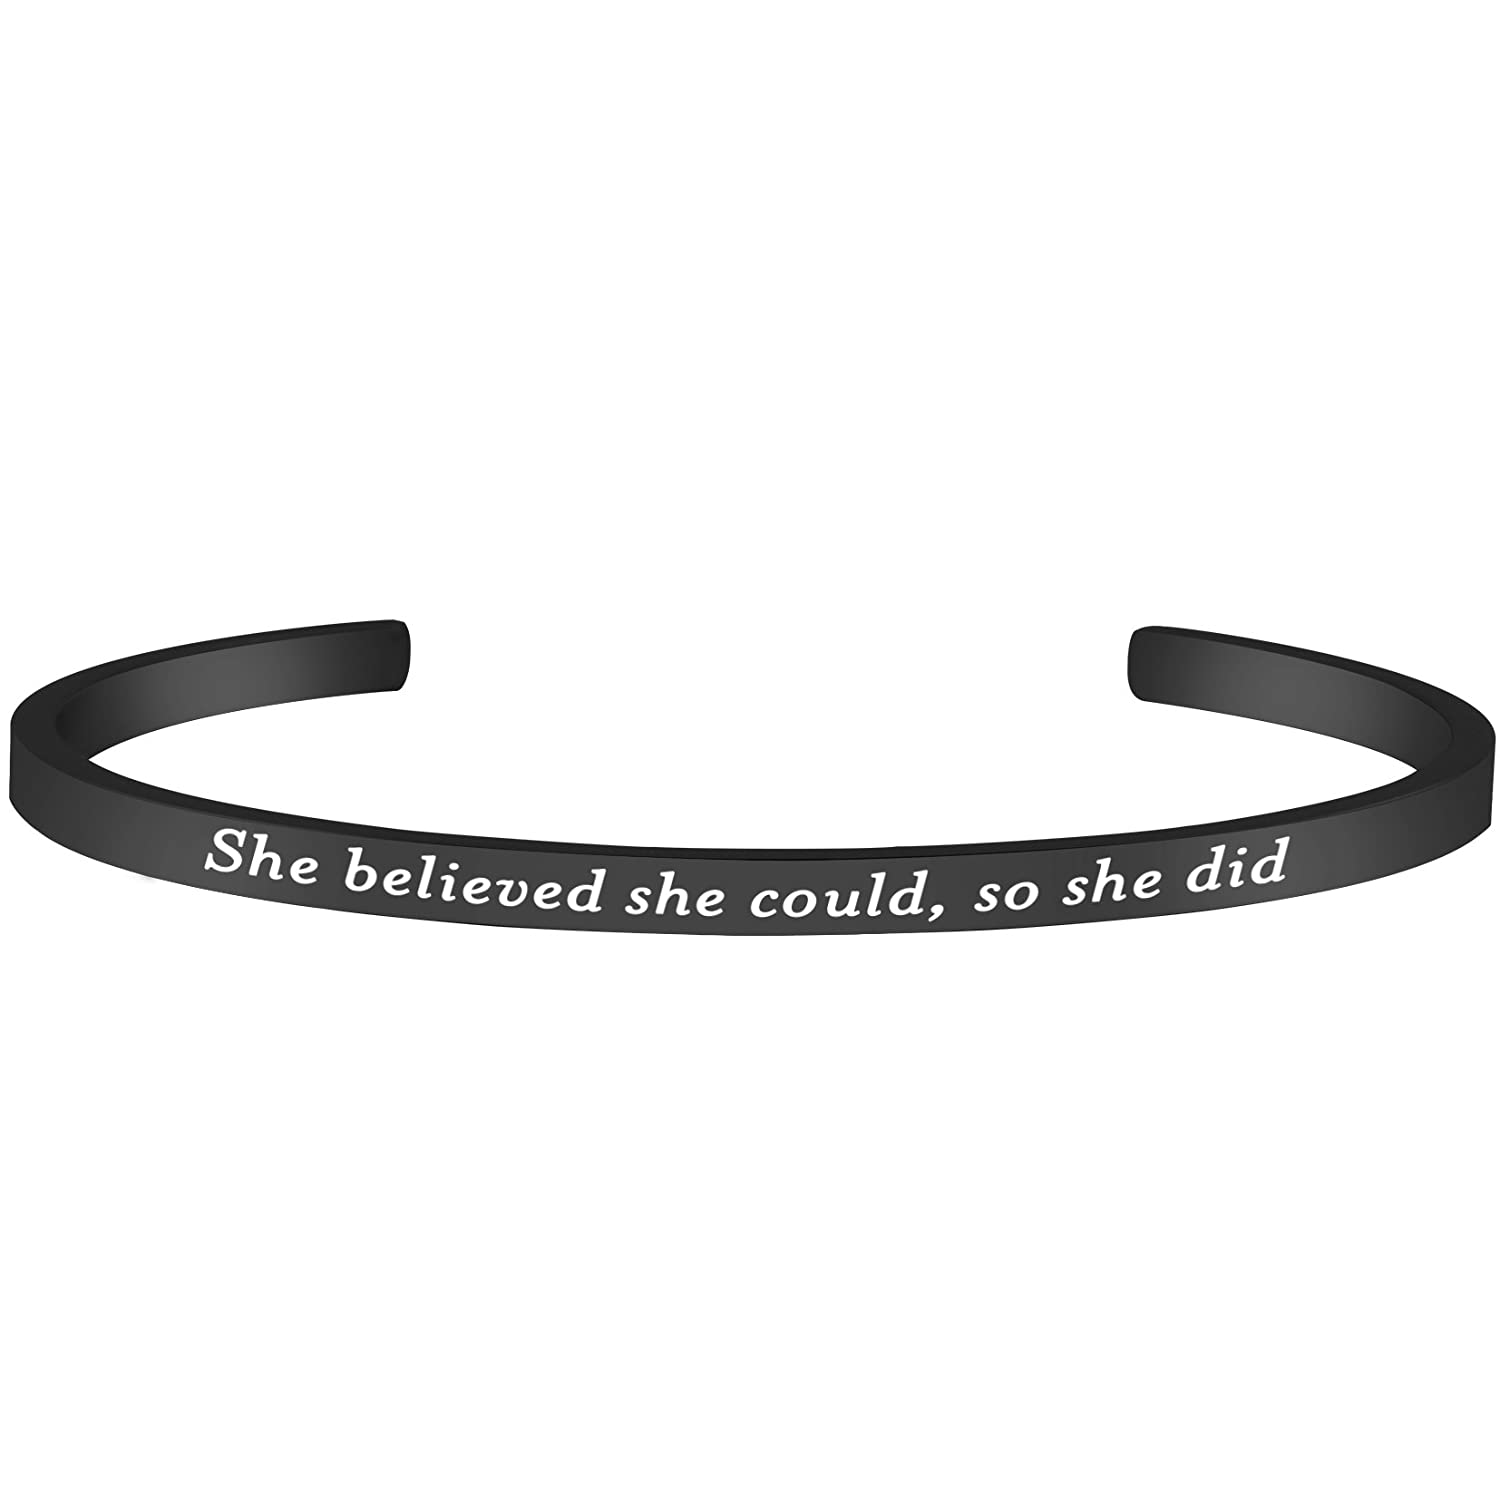 Lademayh She Believed she Could, so she did Inspirational Faith Bracelet Engraved Word Bracelets for her, Adjustable Stainless Steel Personalized Bracelet Lademayh INC 2005-16-OR